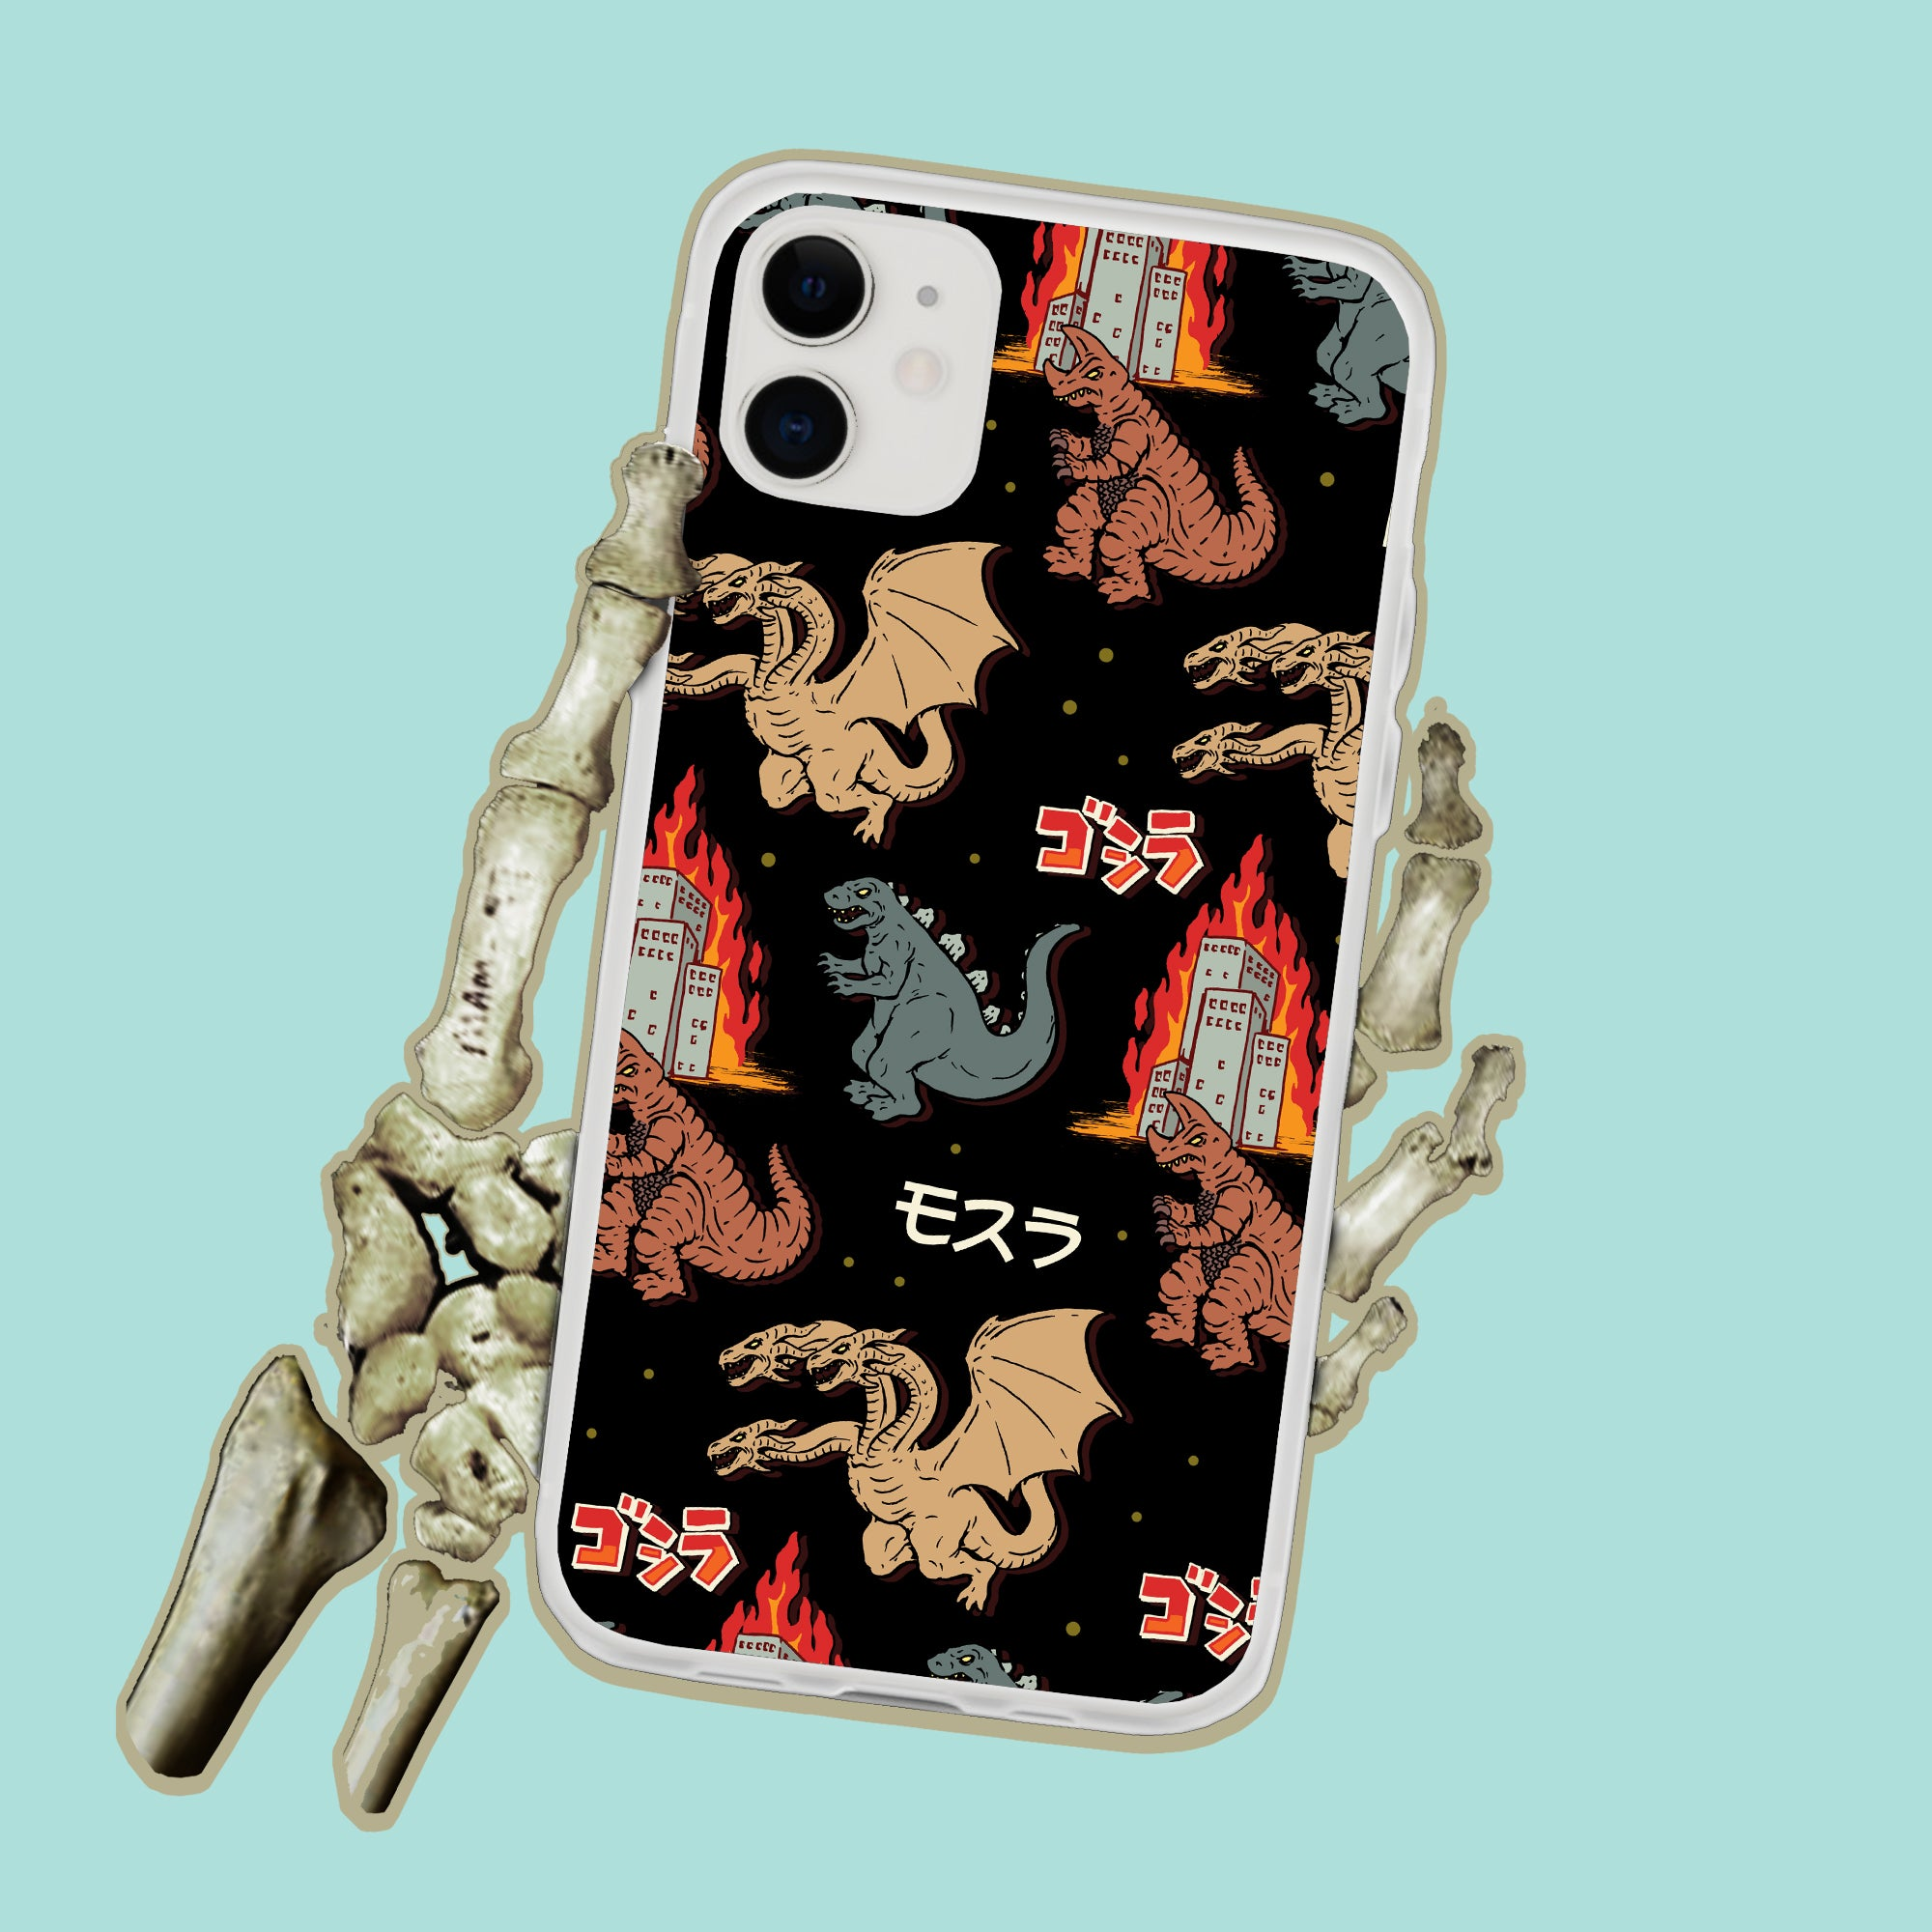 Godzilla And Friends Japanese Monsters iPhone Case